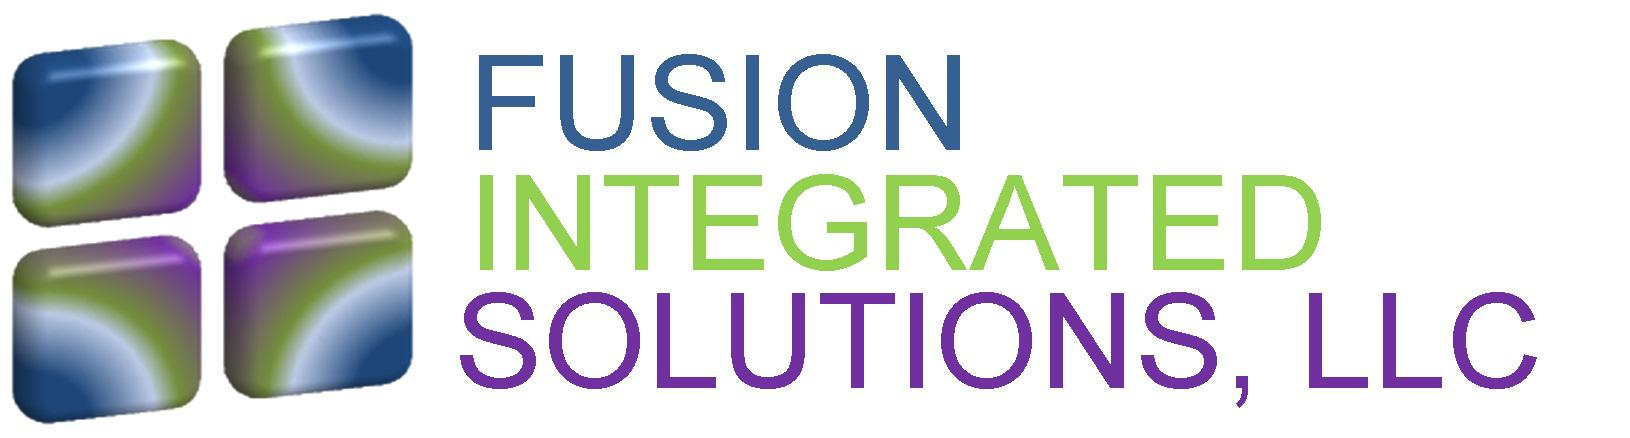 Fusion Integrated Solutions, LLC